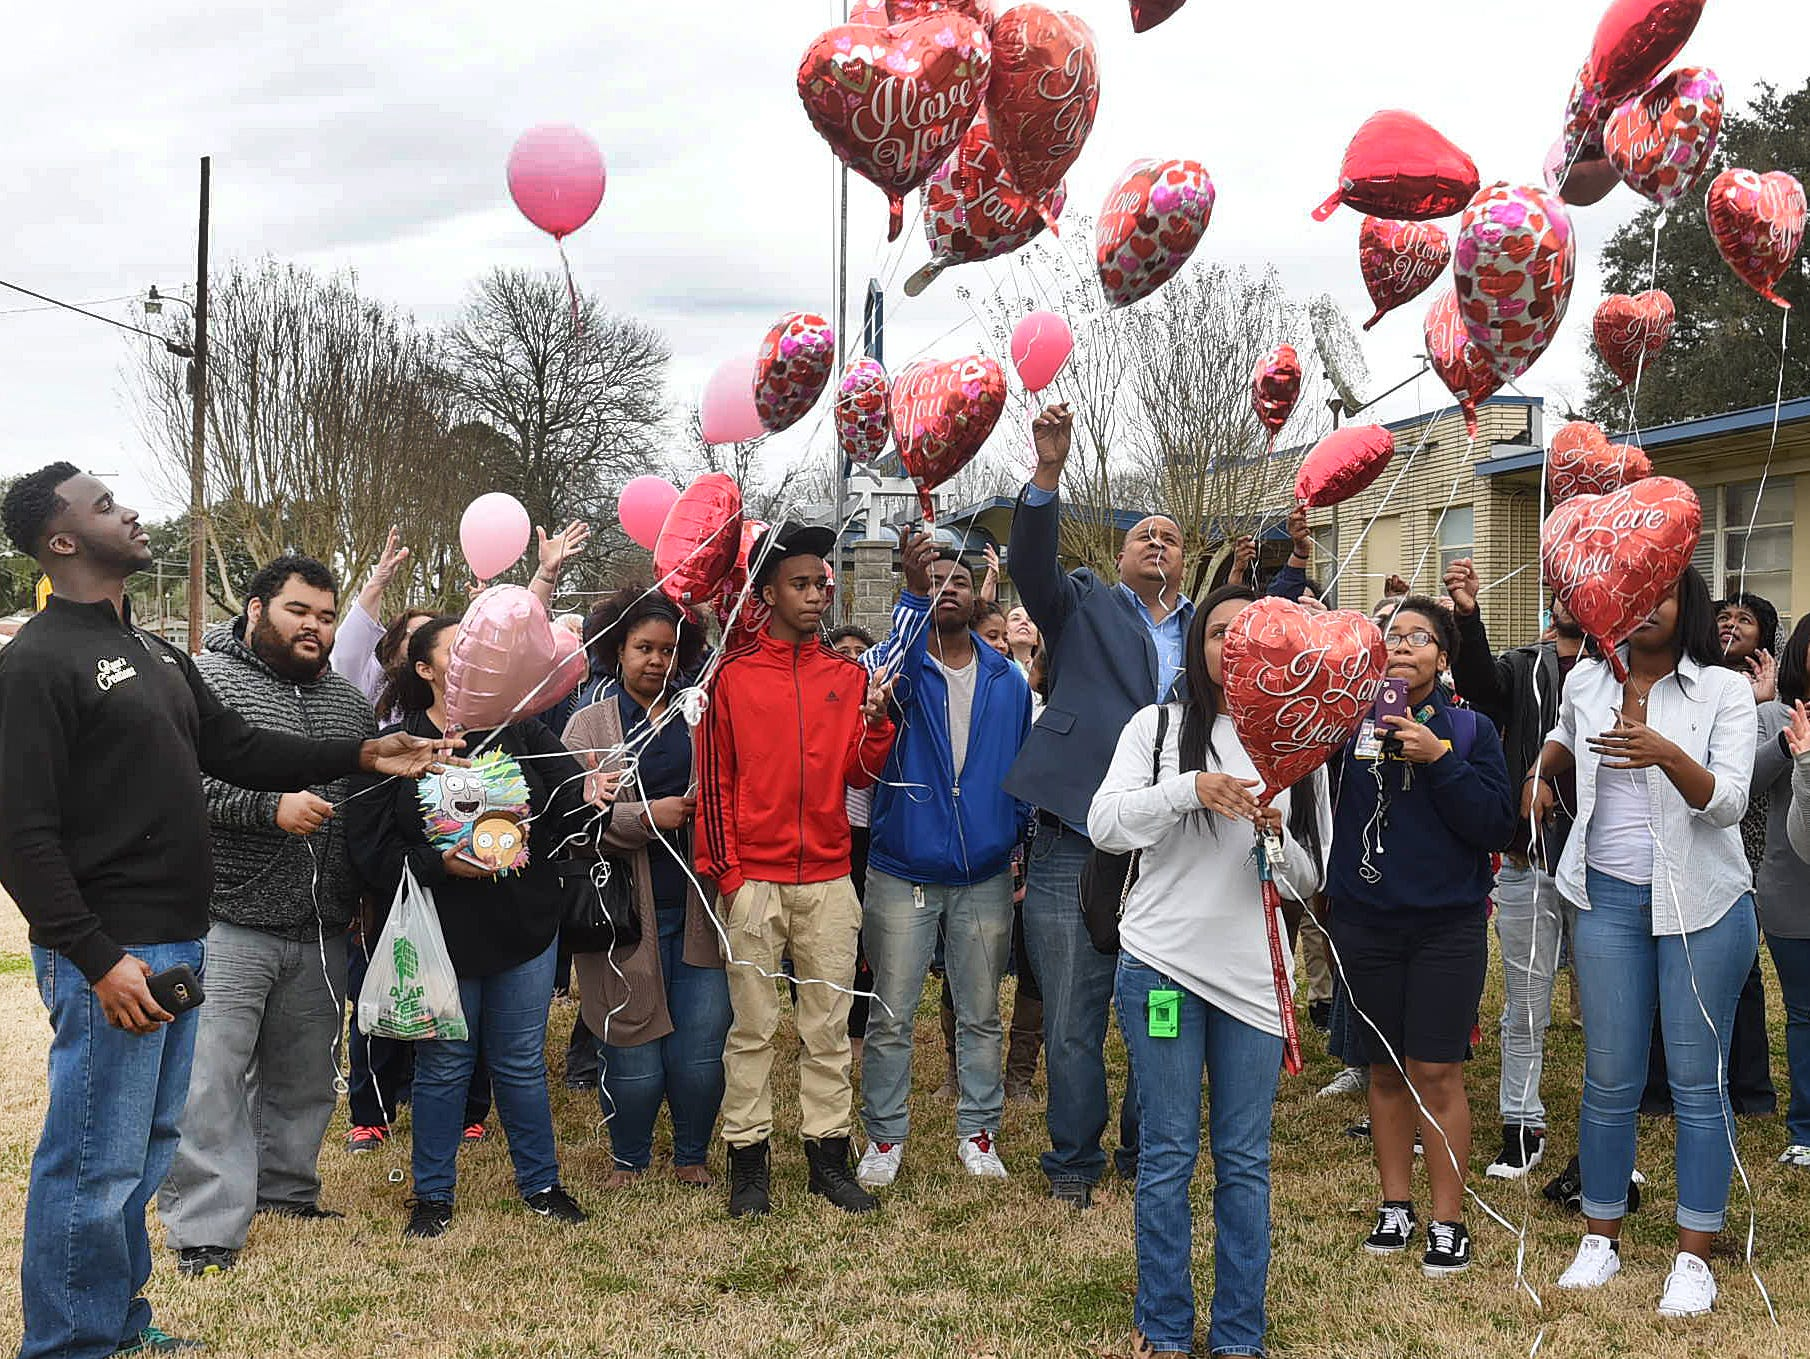 A balloon launch in memory of Stella Thomas long time educator and Daily World columnist who passed awary in 2018.